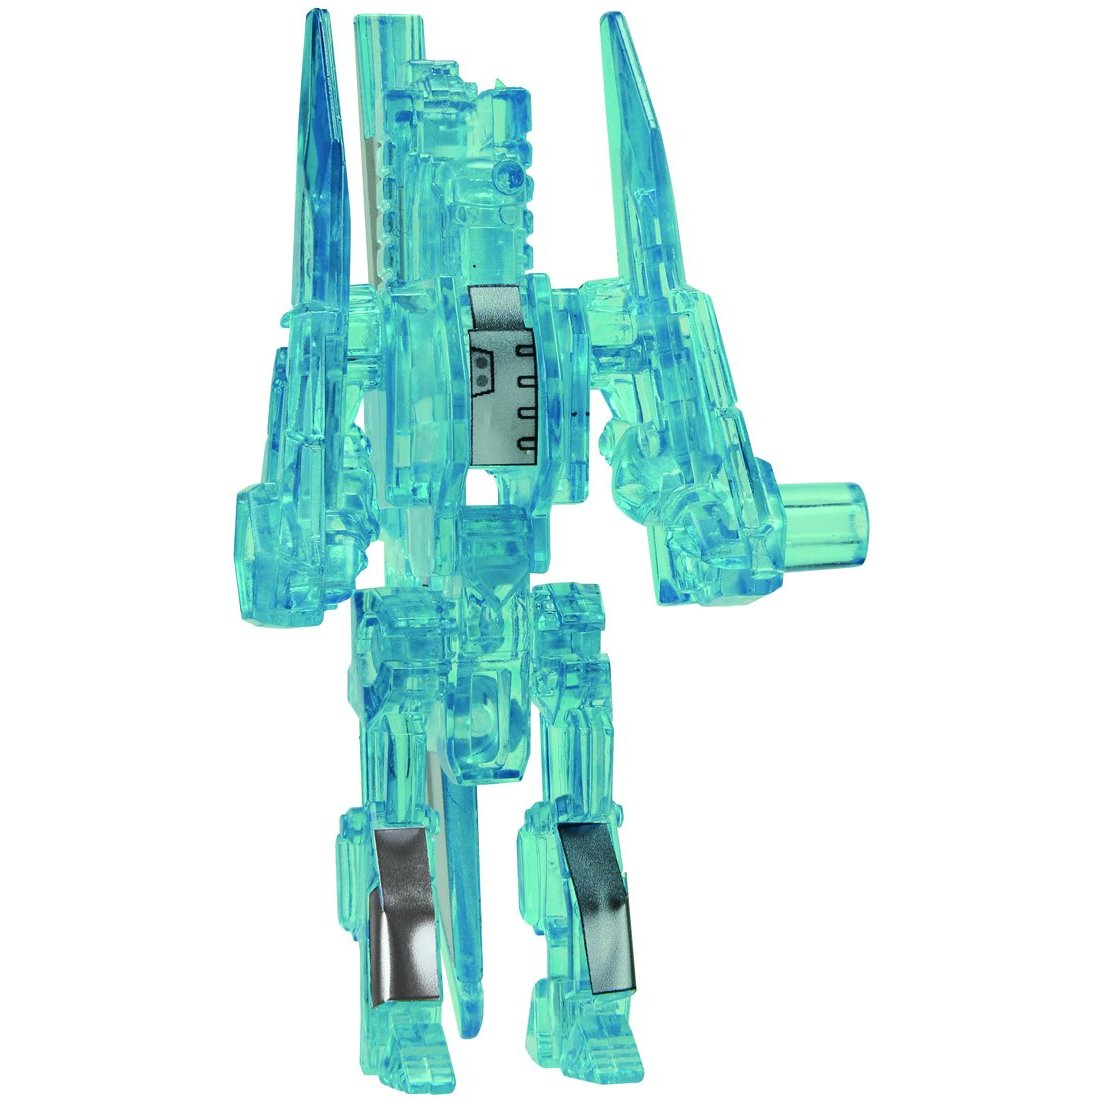 Optimus Prime (Arms Master) with Matrix and Shining R.A. 6172GjFSolL_AA1100_